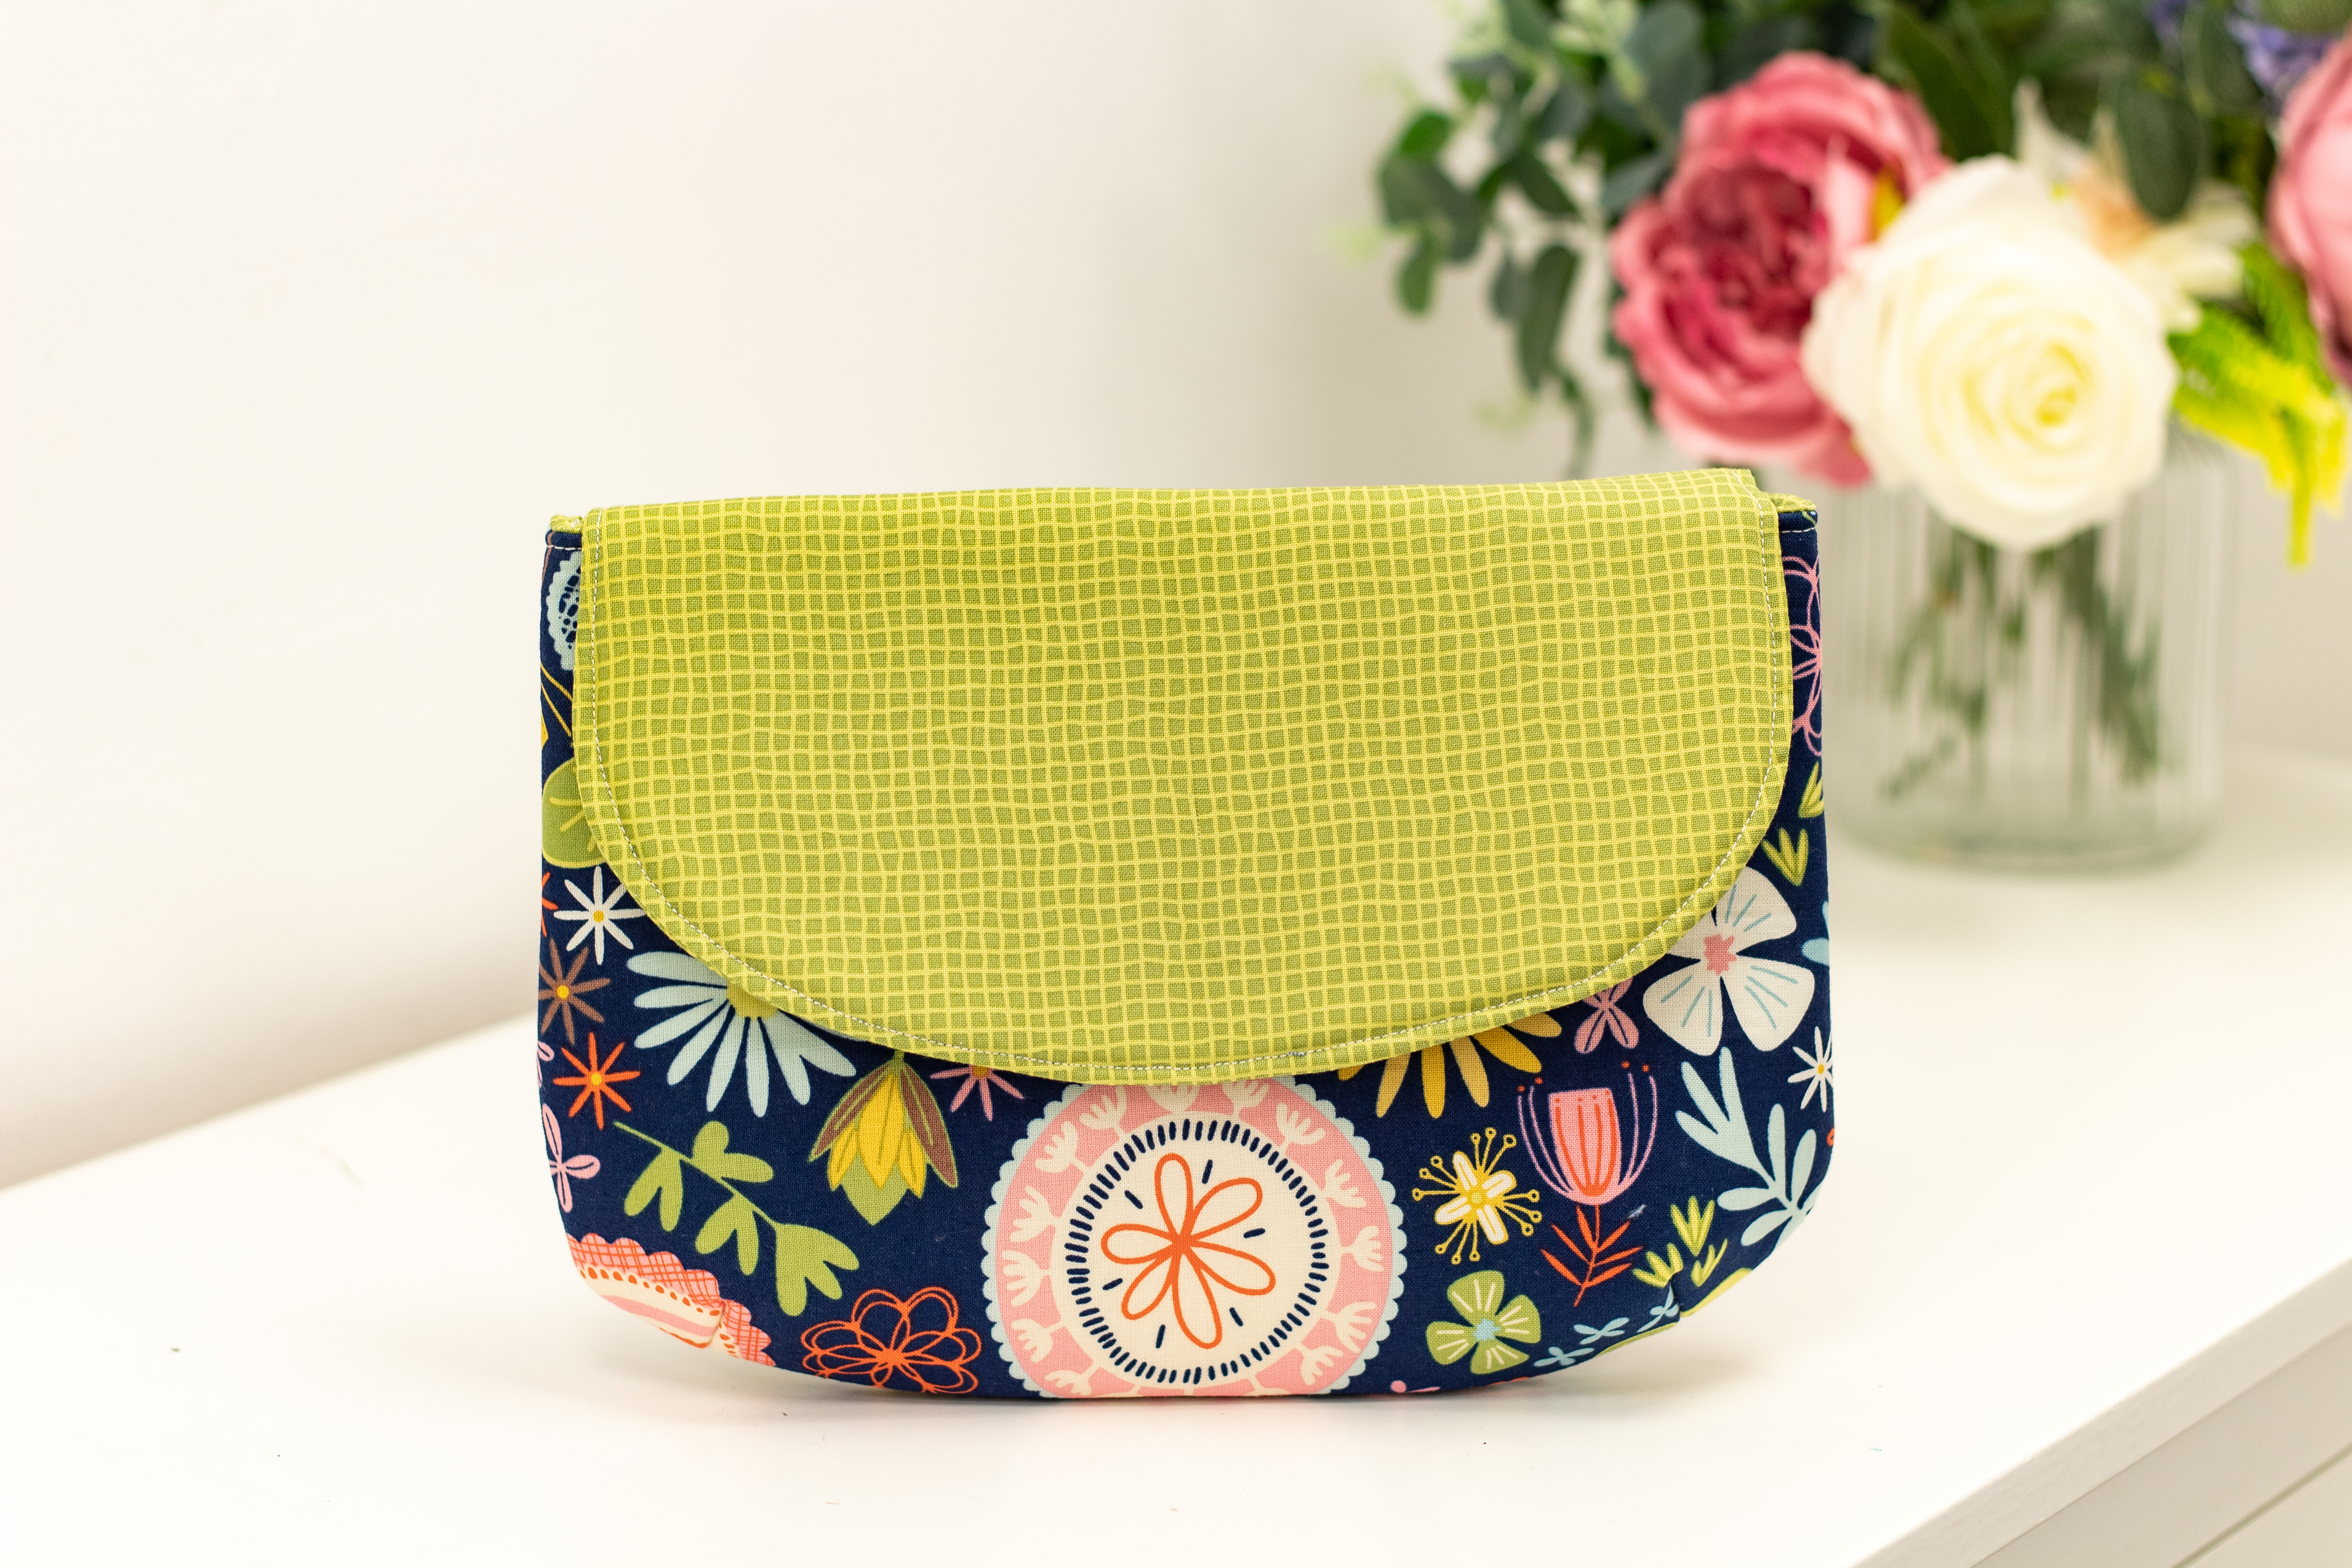 Rounded Clutch Bag